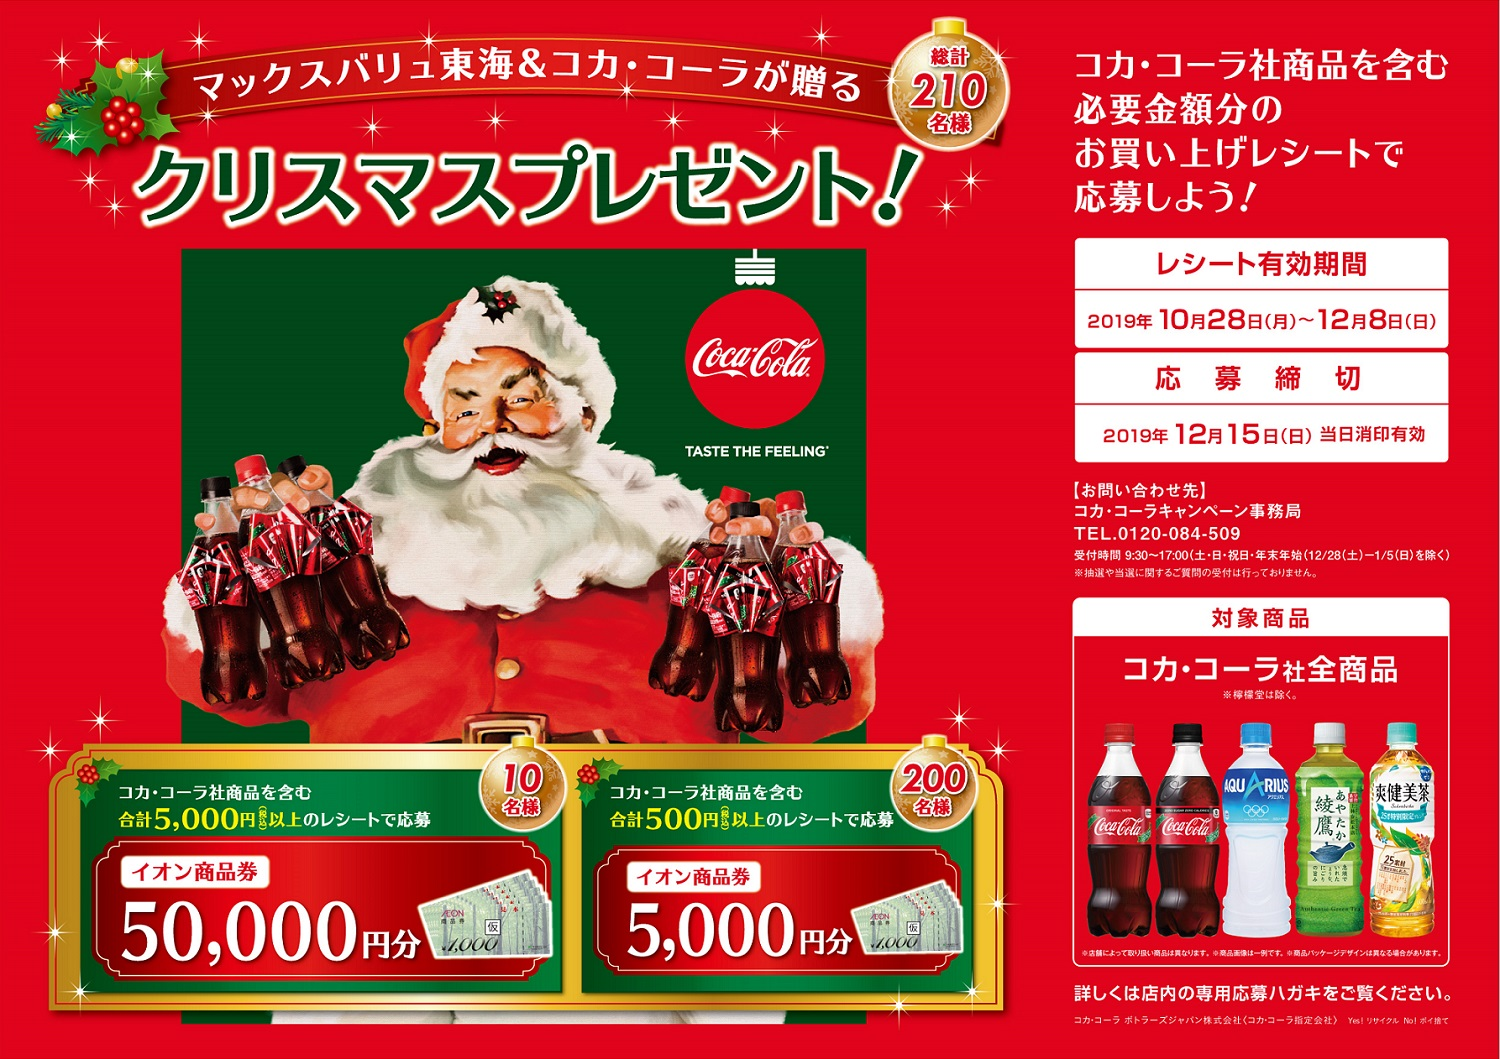 https://www.mv-tokai.co.jp/wp/wp-content/uploads/2019/10/cola.jpg